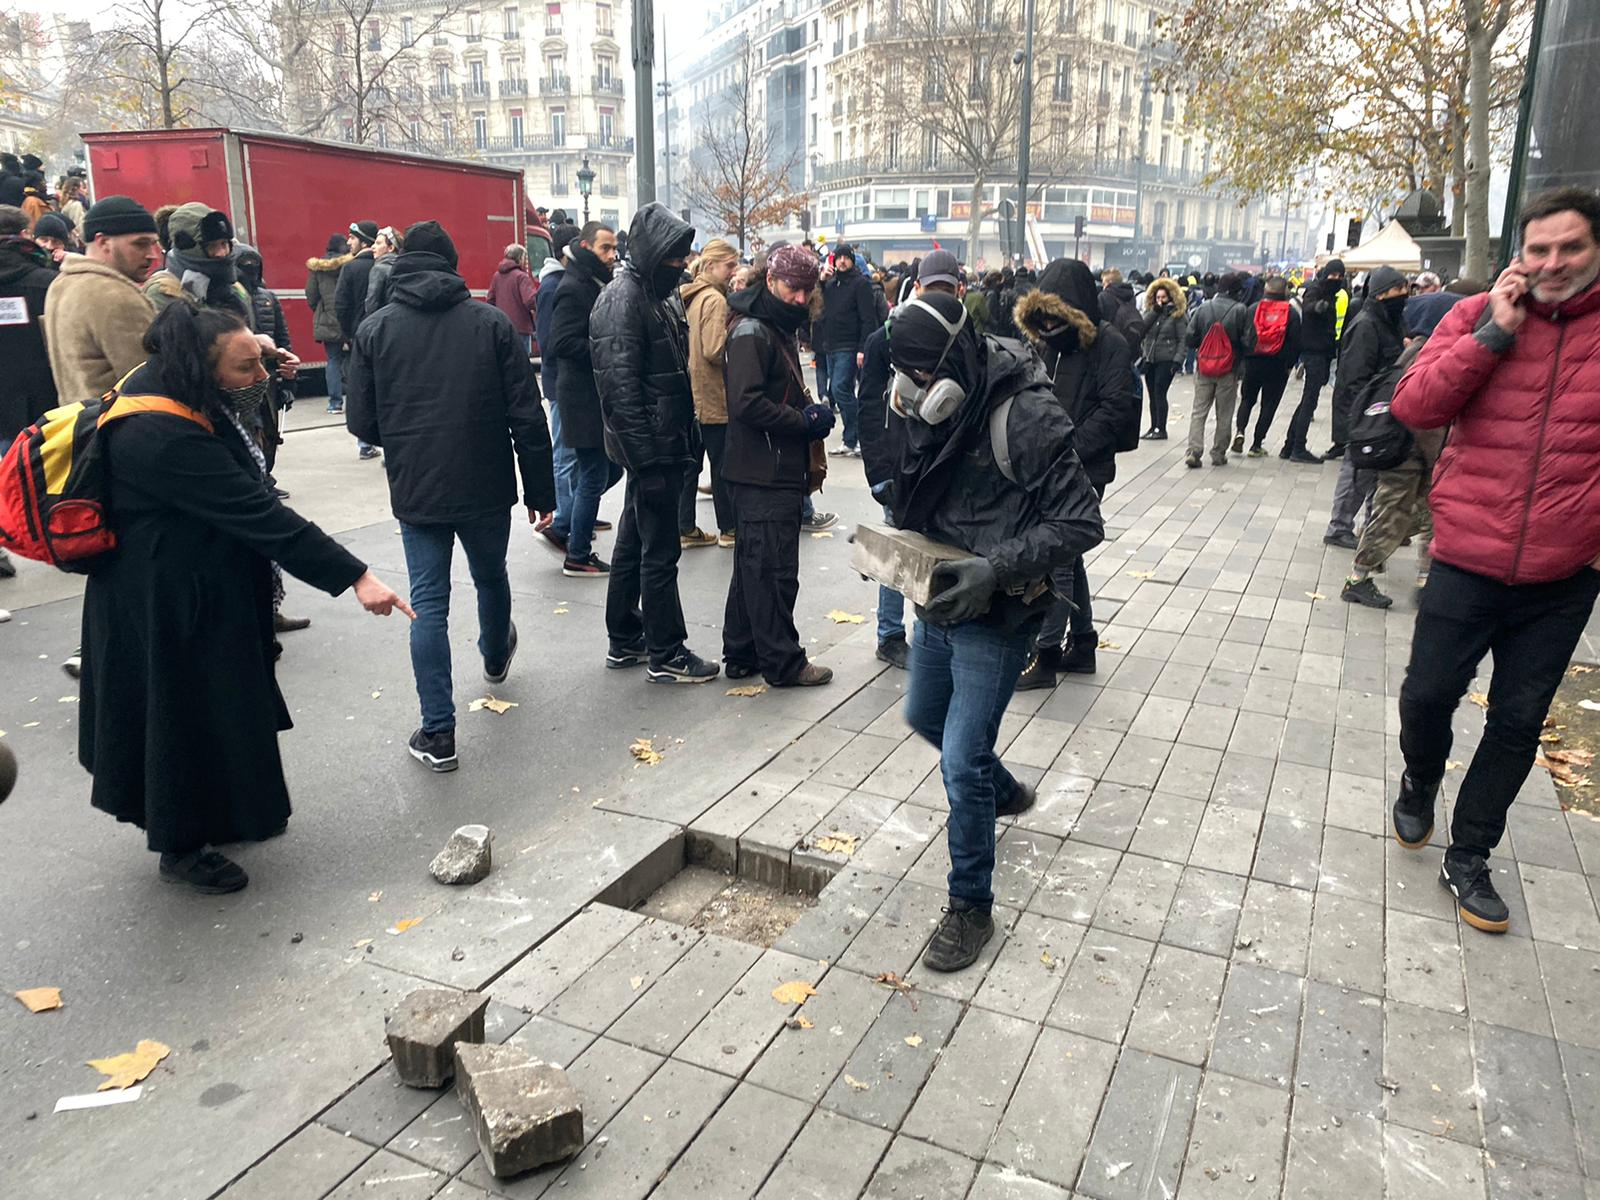 A protester rips up bricks from a sidewalk in Paris.